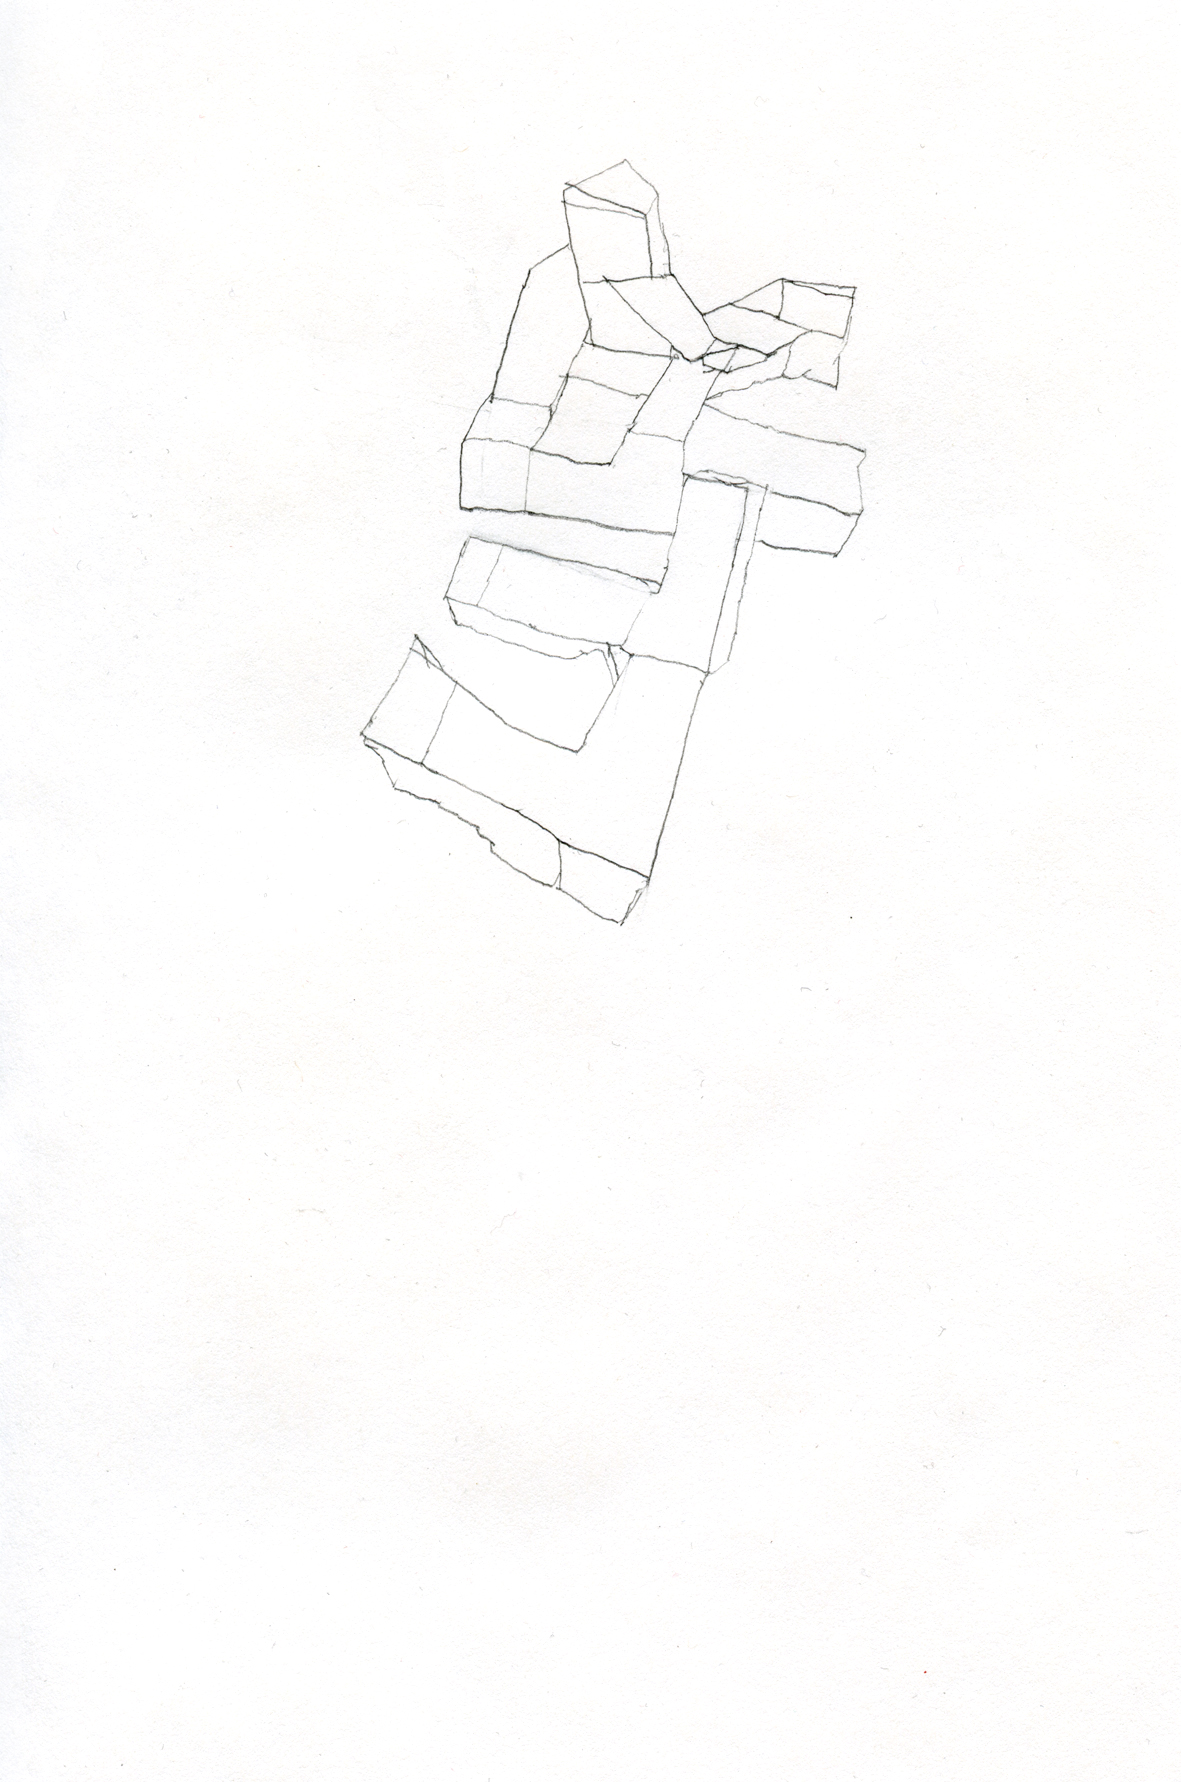 untitled drawing pencil on paper, 15 x 21 cm